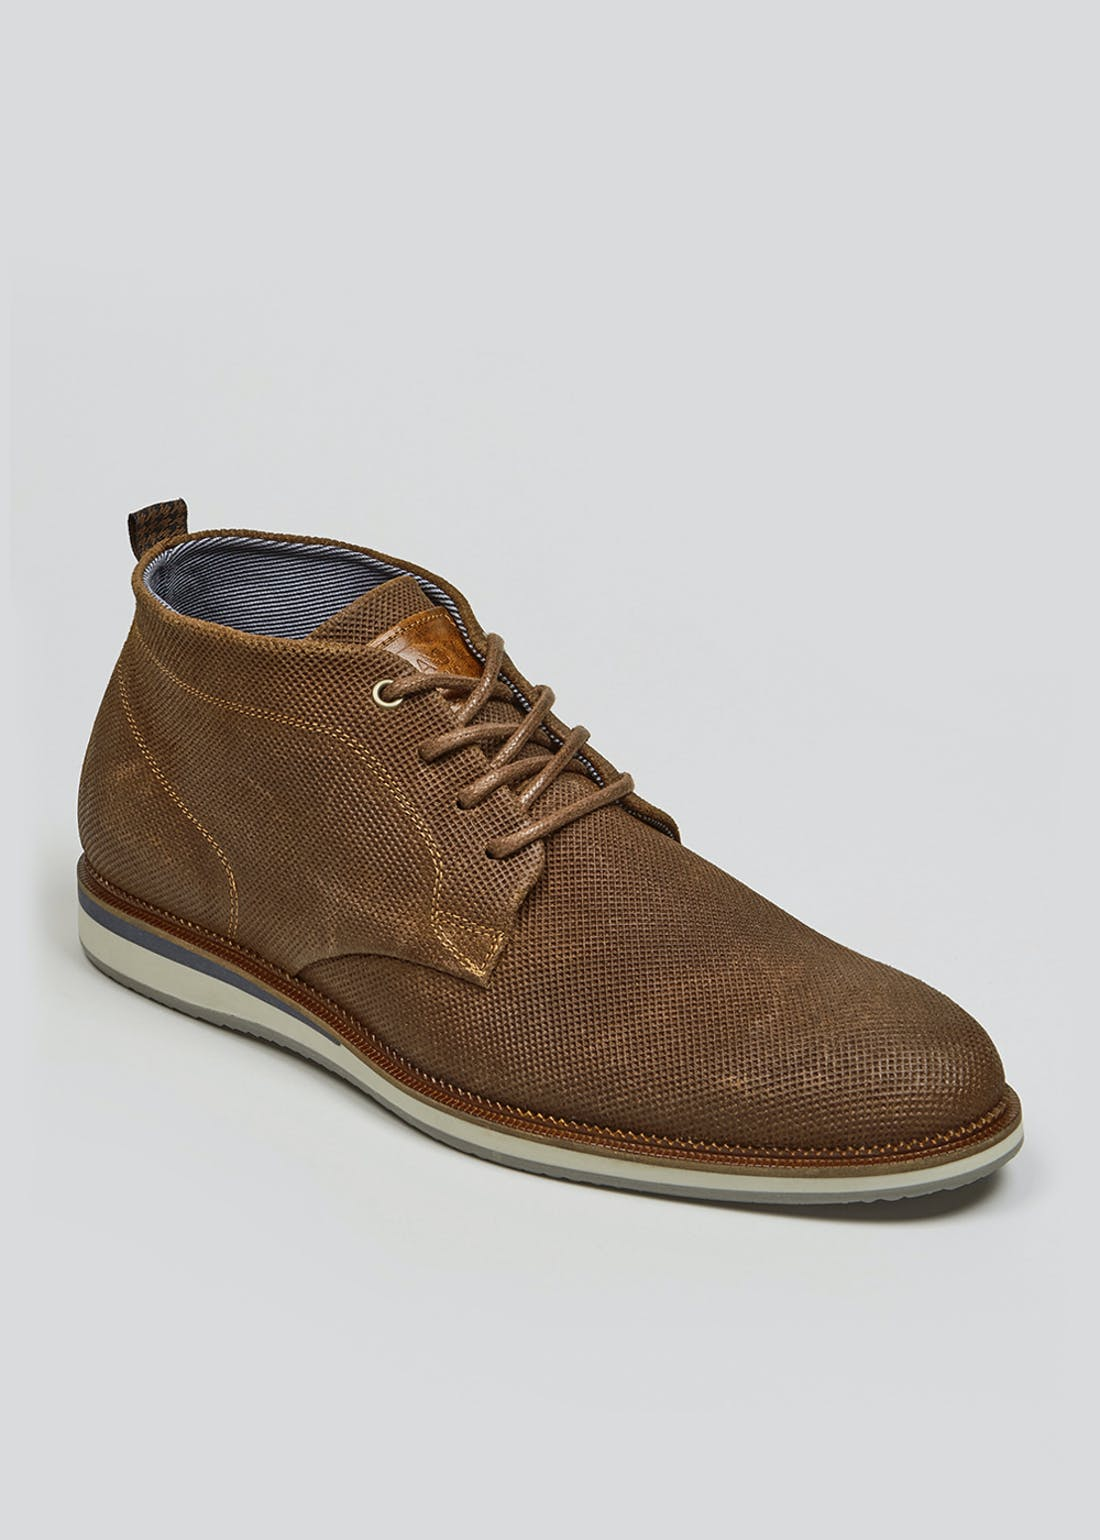 Real Leather Perforated Desert Boots